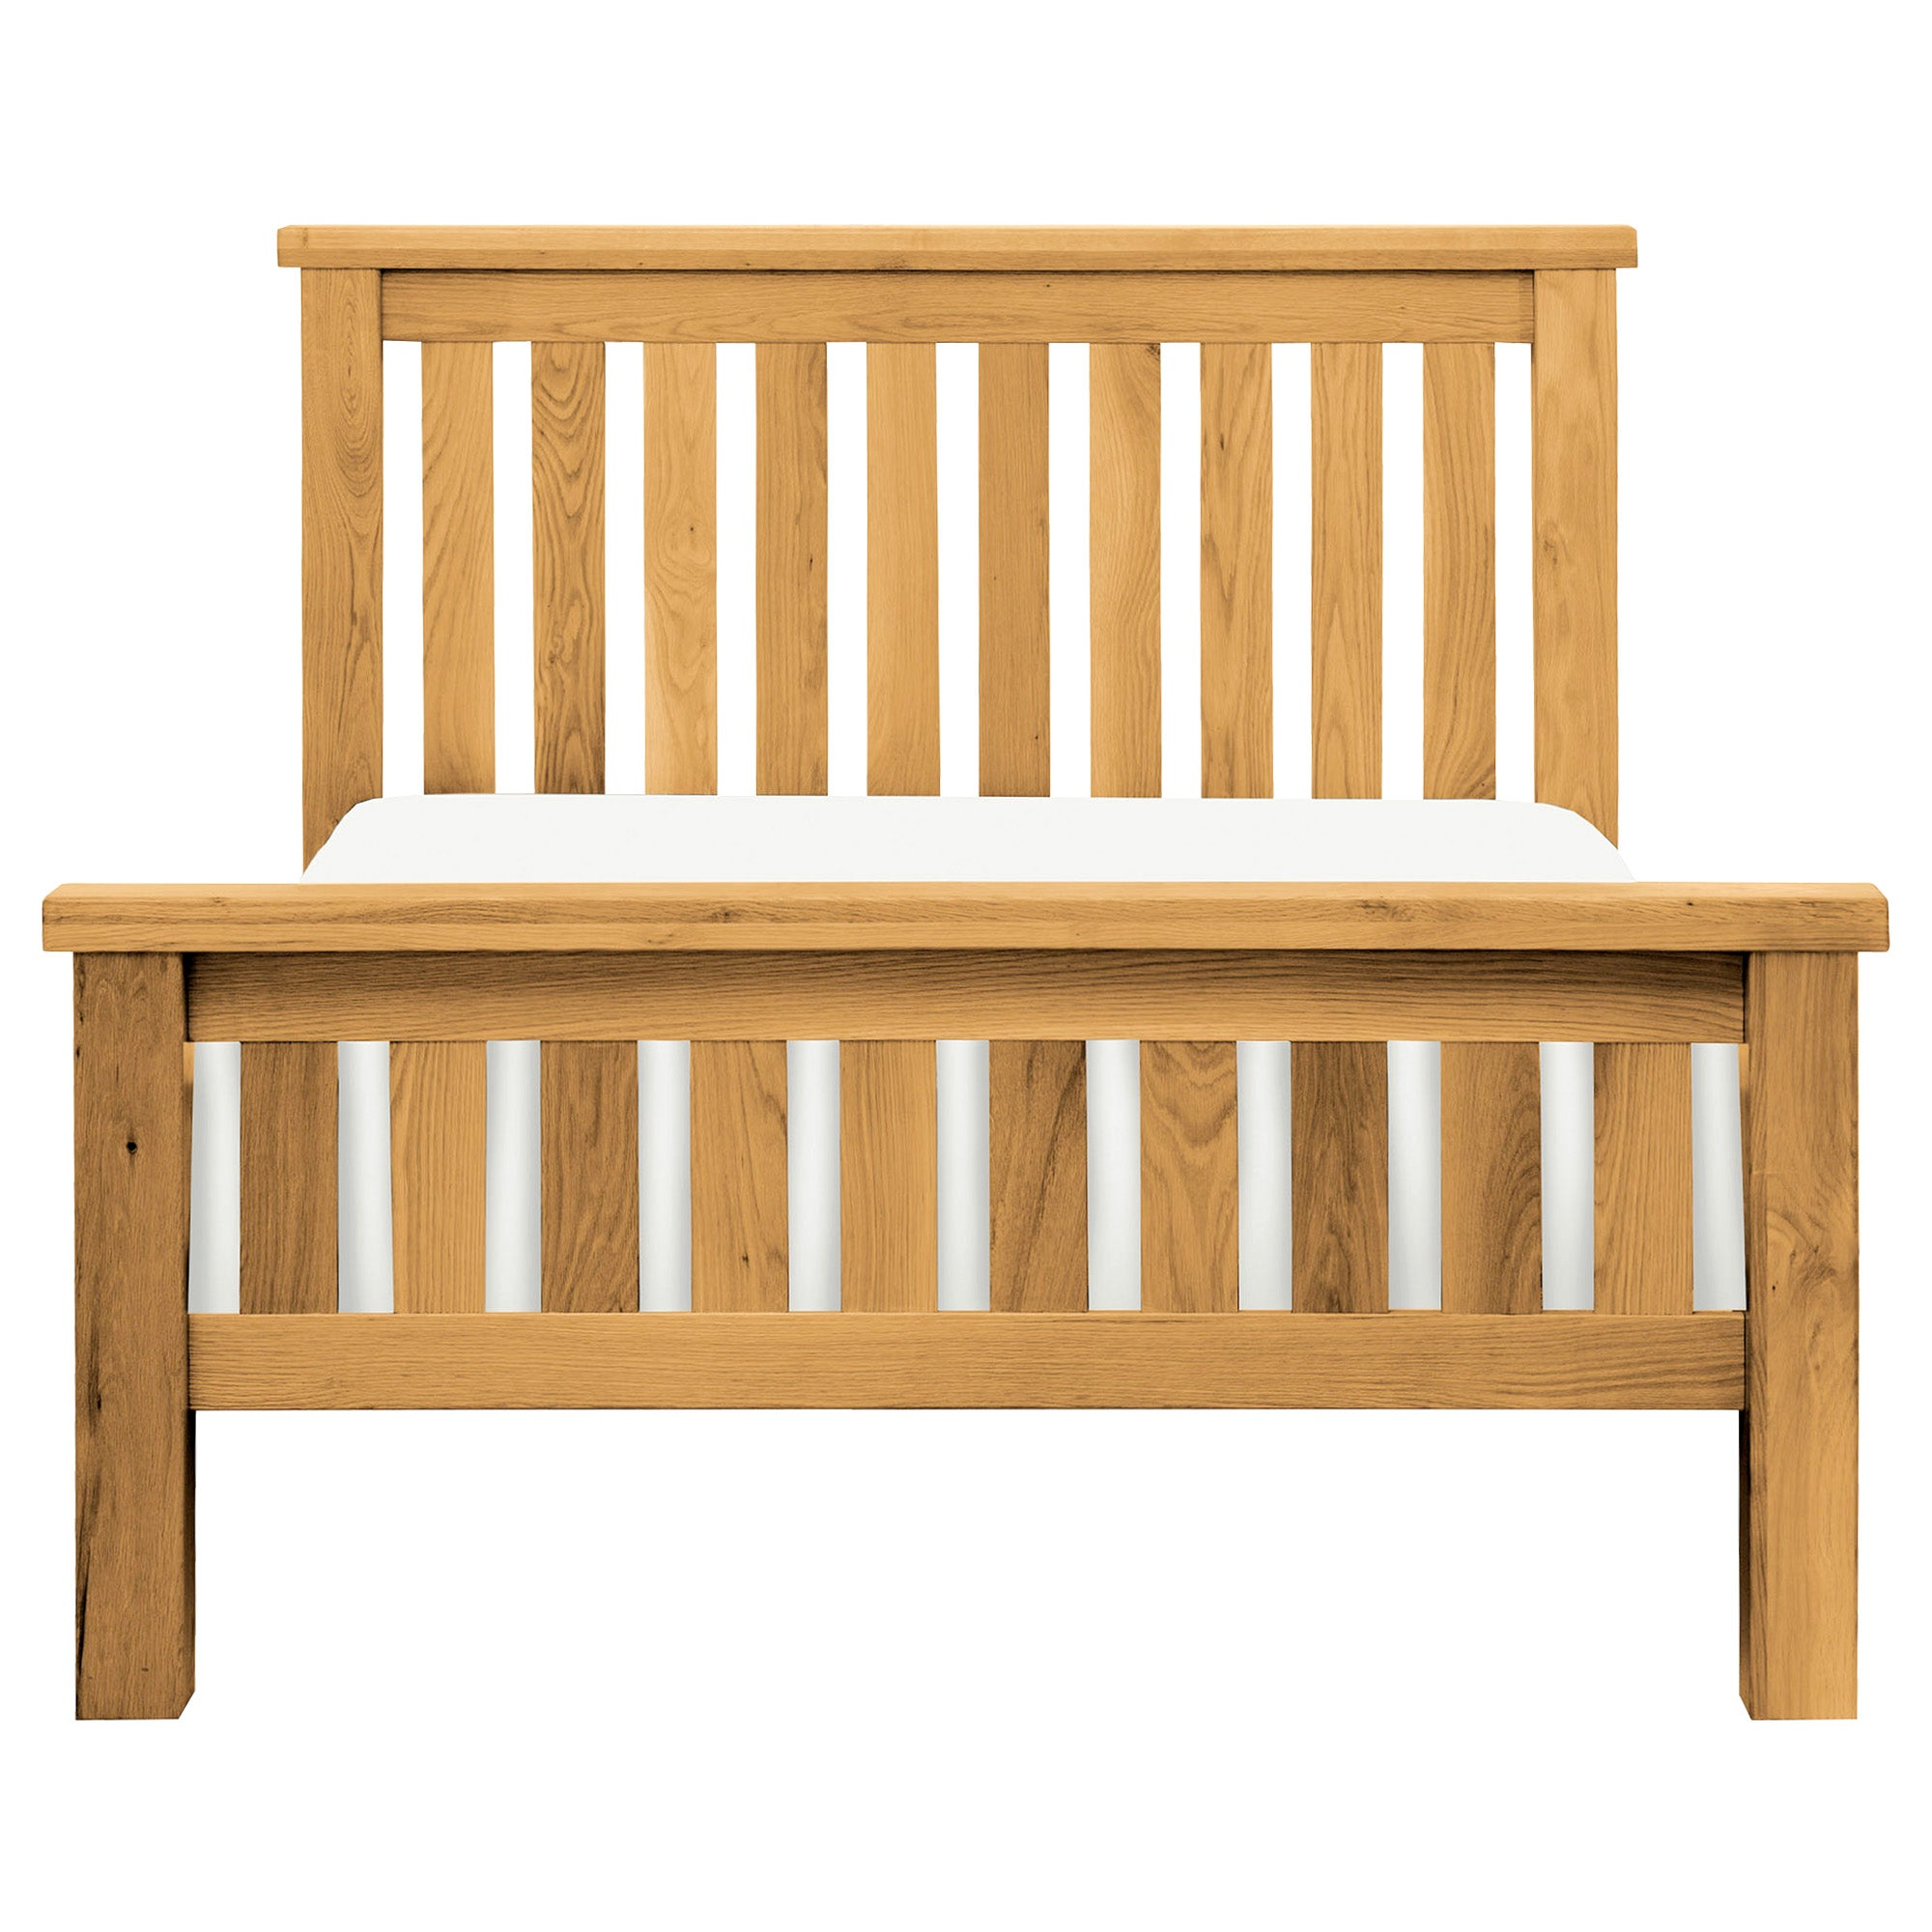 Harrogate Oak Slatted Bedstead